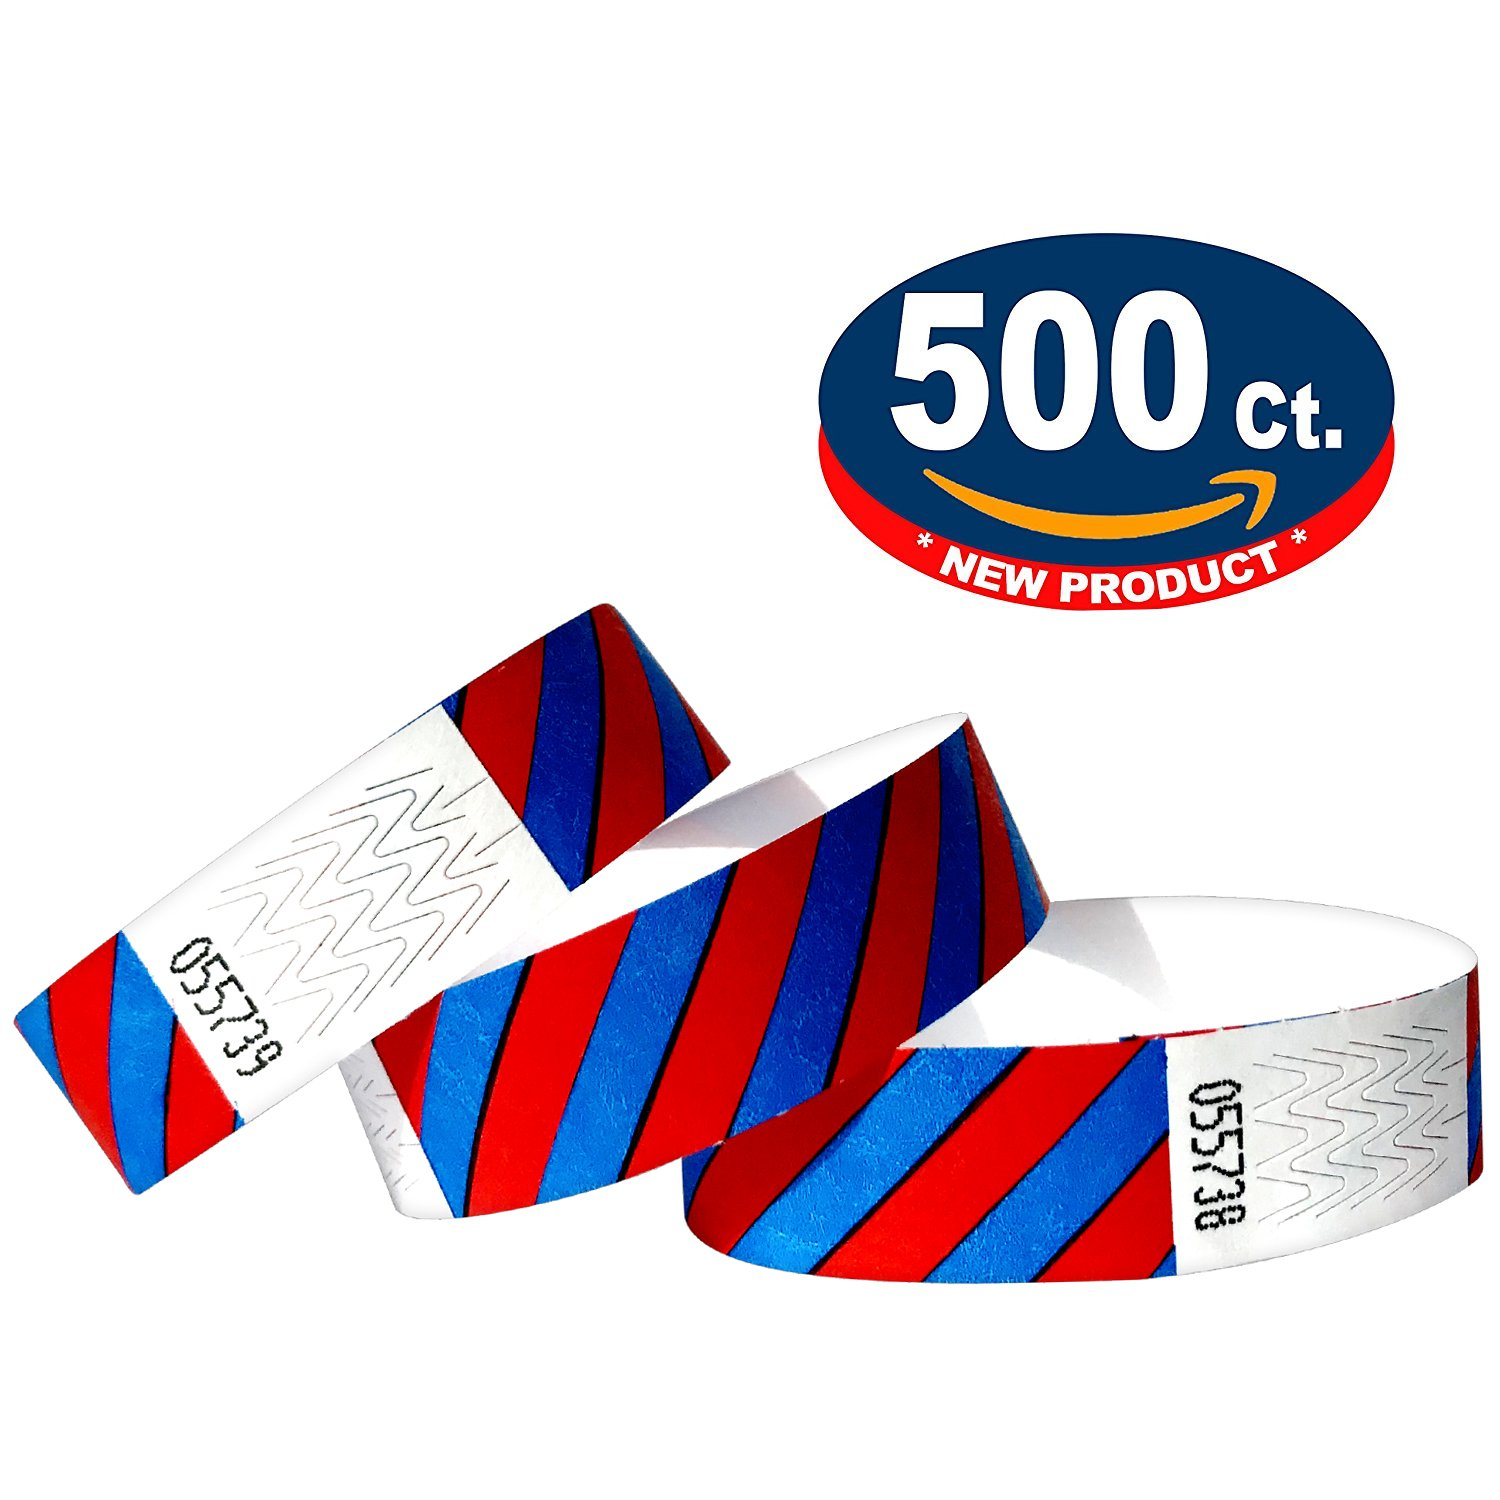 Tyvek Wristbands - Striped - 500 Pack - Neon Blue + Neon Red - 3/4'' Tyvek Wristbands for Events